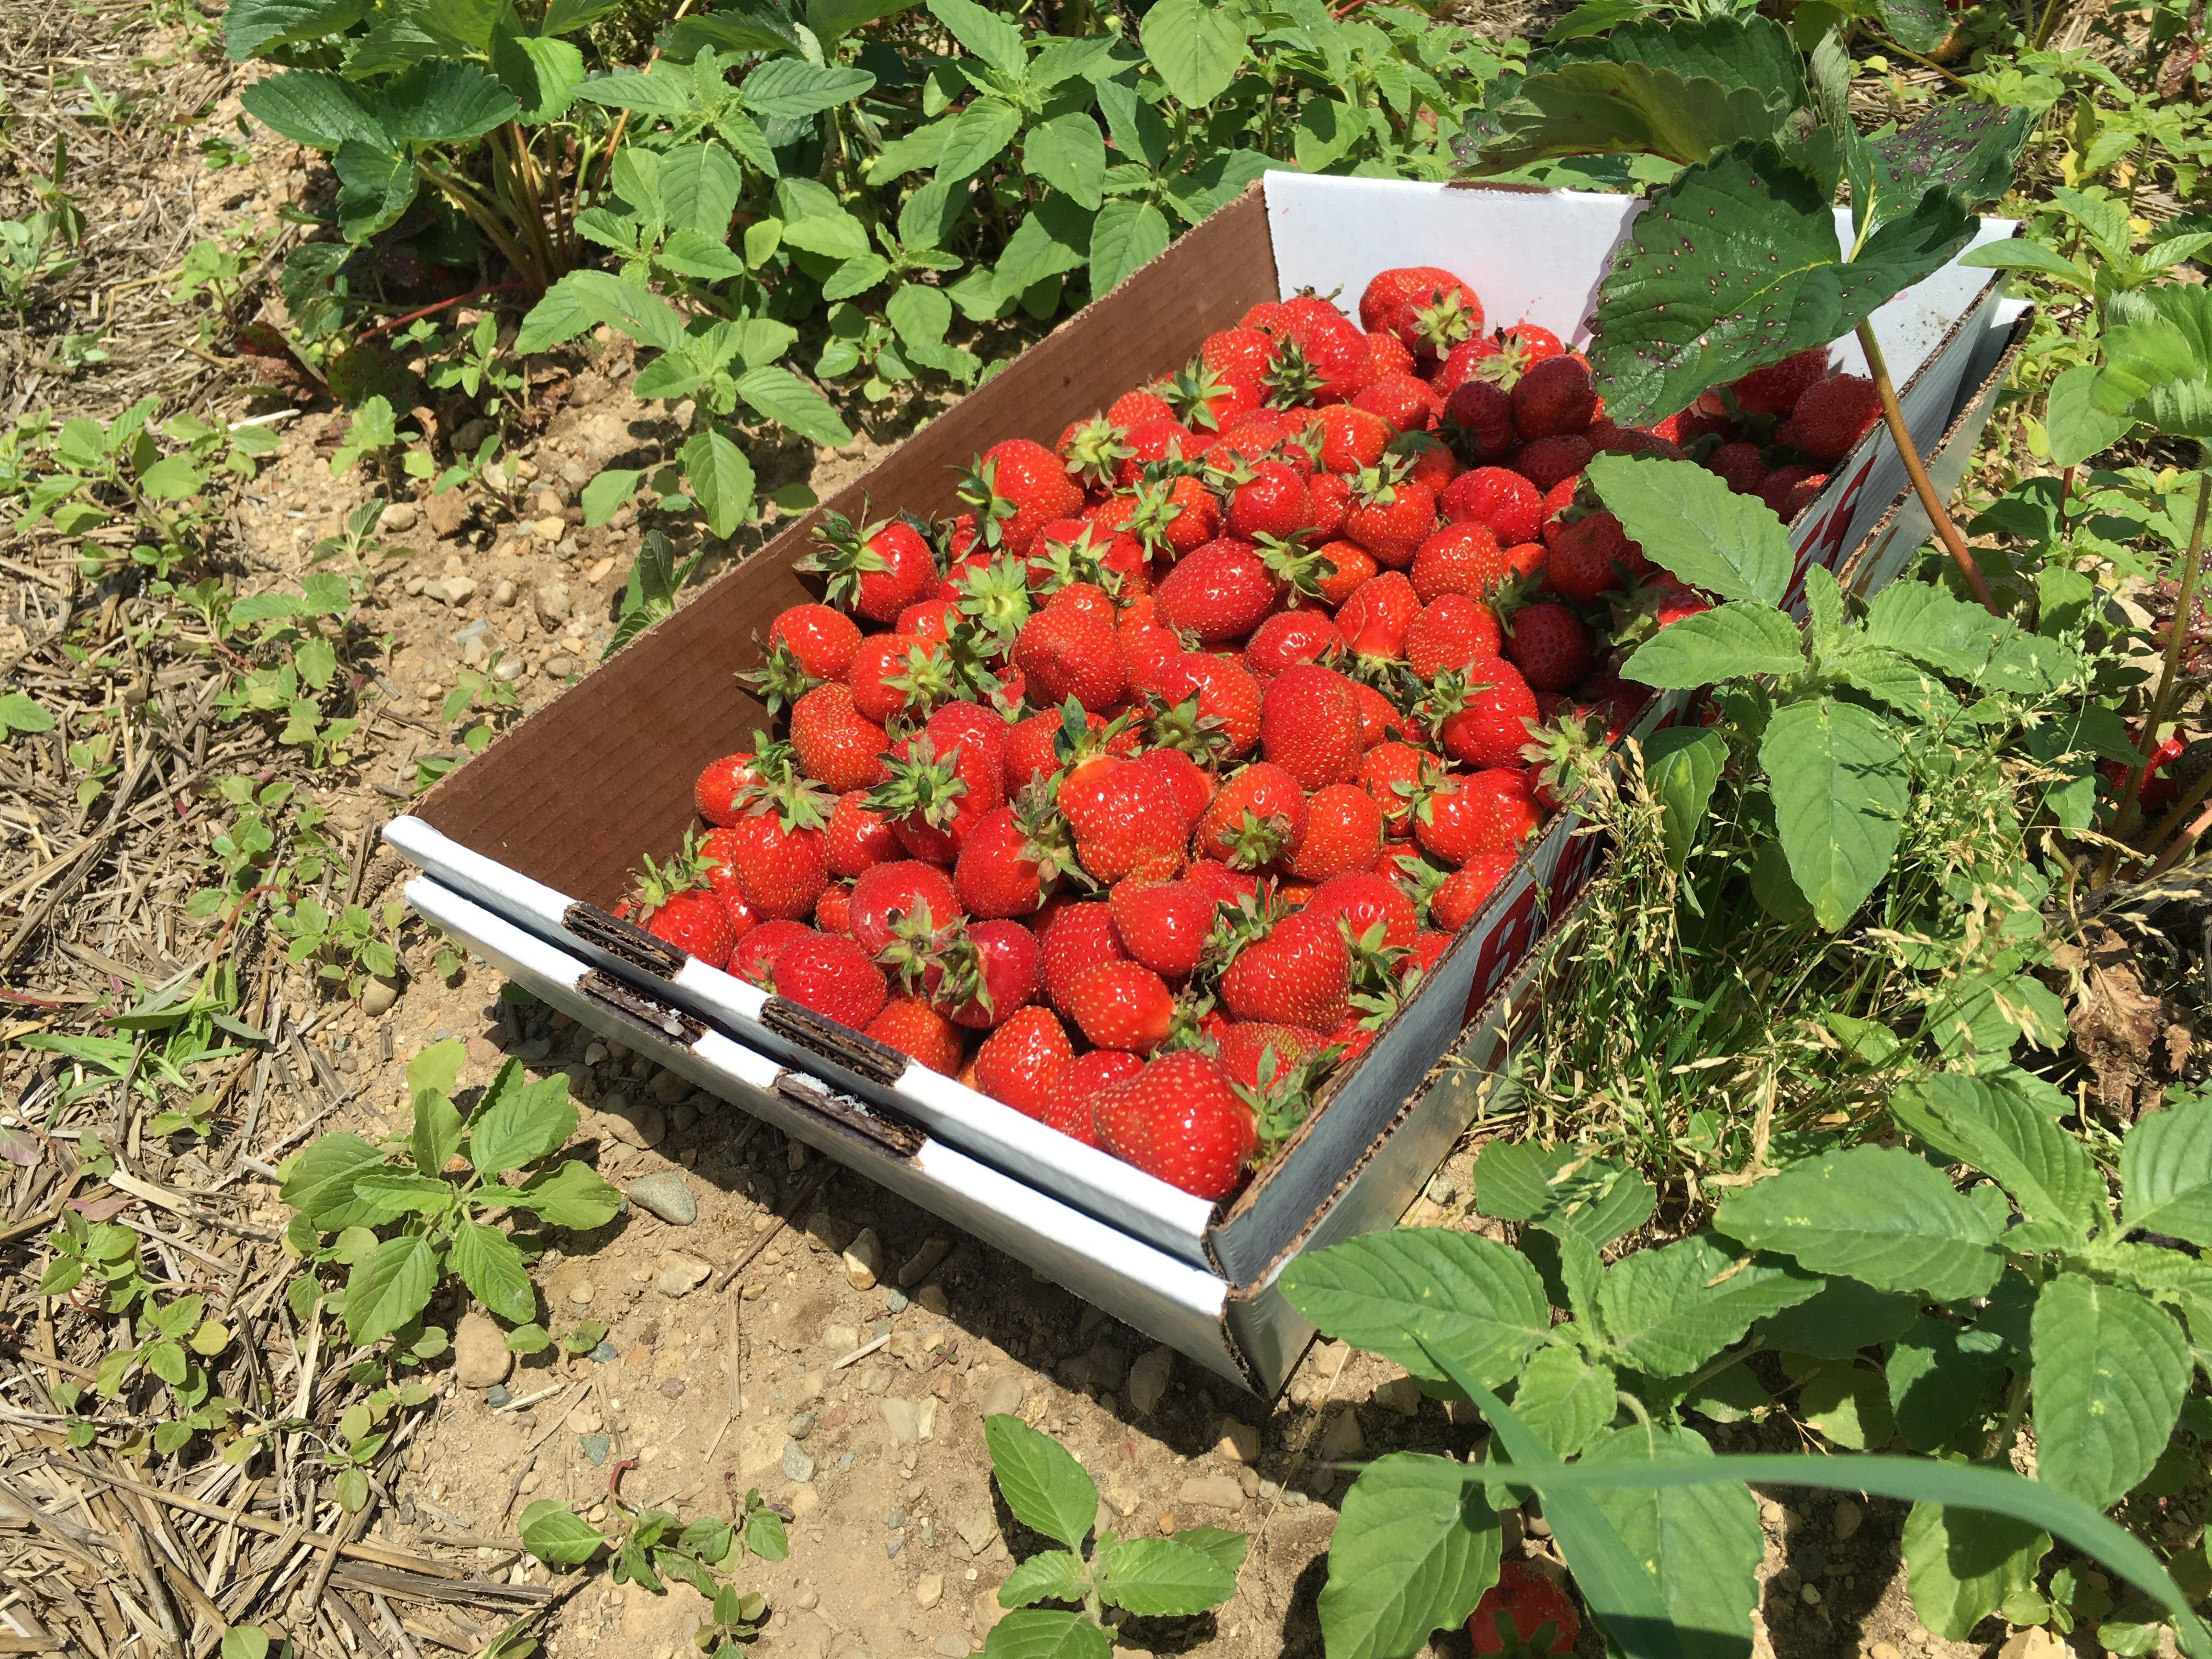 Bob Tritten, veteran Michigan State University Extensiondistrict fruit specialist, said consumers can expecta good strawberry crop this season.